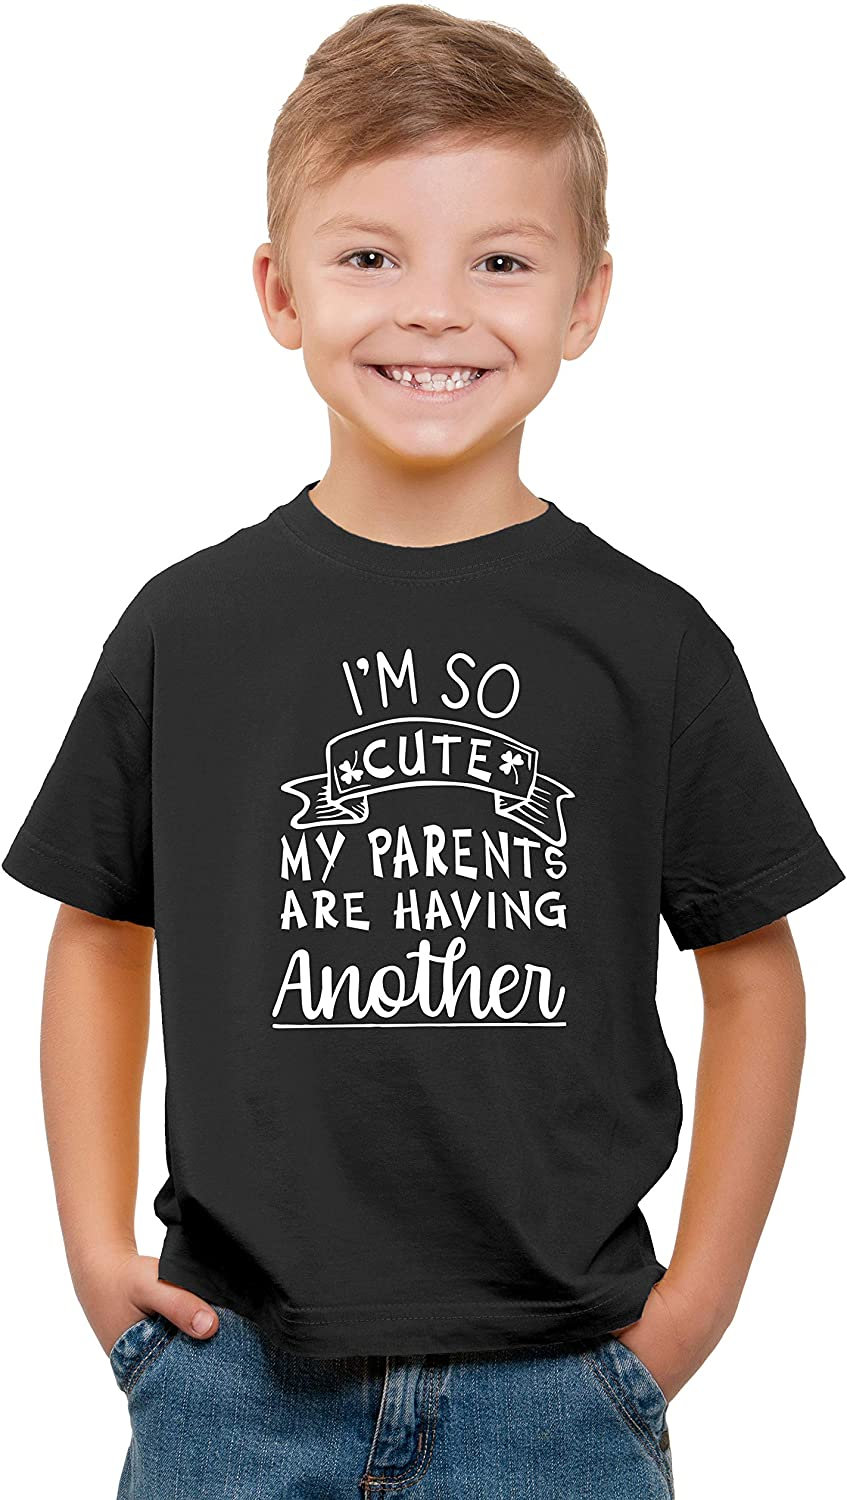 Pregnancy Announcement Witty Fashions Im So Cute My Parents are Having Another Kids T-Shirt Funny Older Sibling